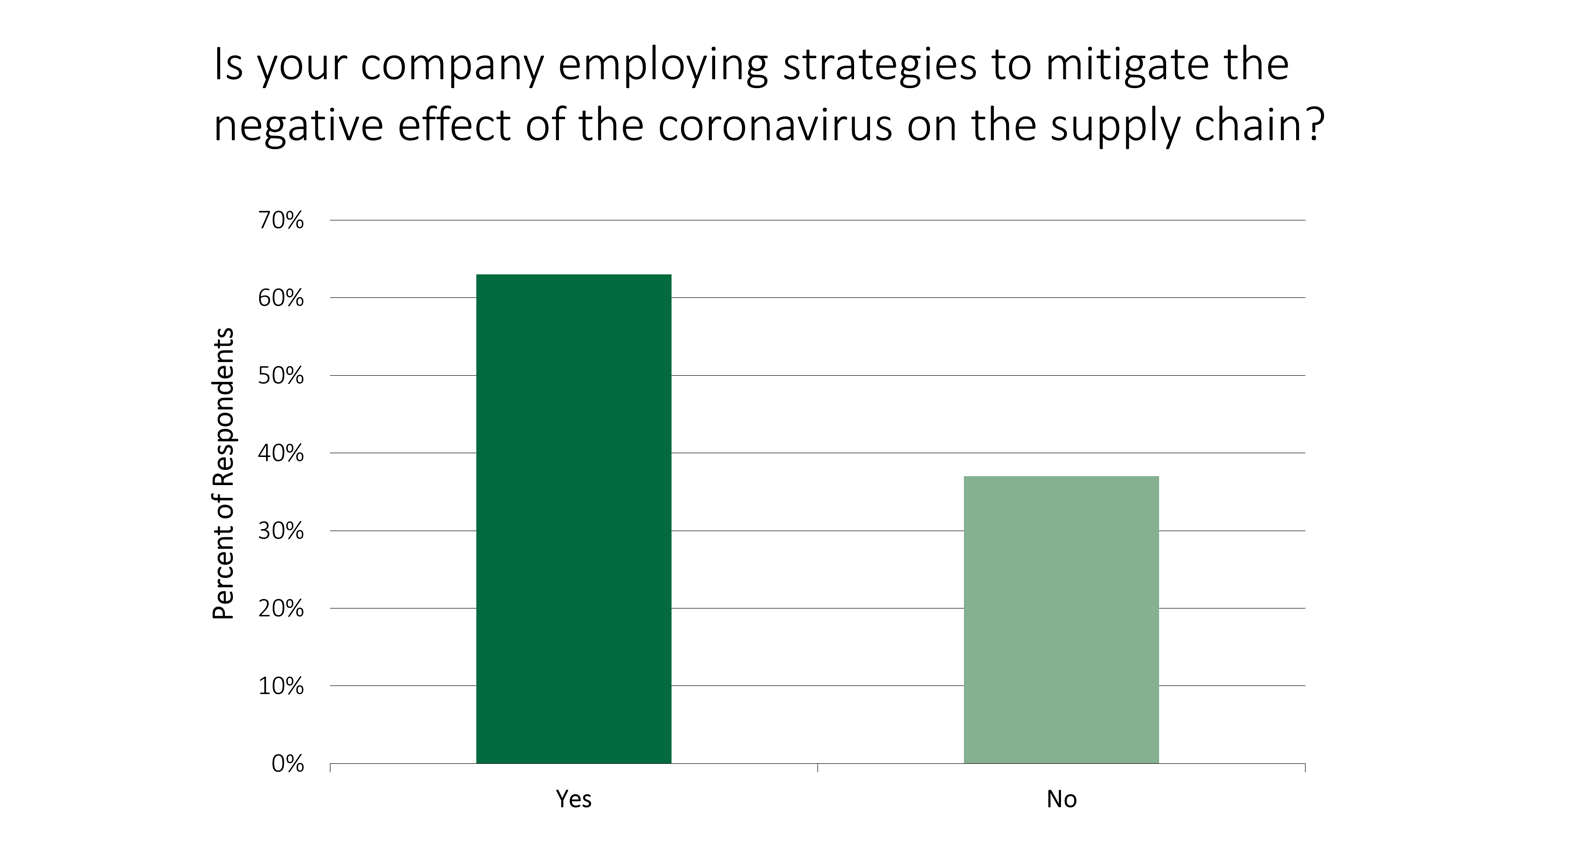 Bar chart: Is your company employing strategies to mitigate the negative effect of the coronavirus on the supply chain?